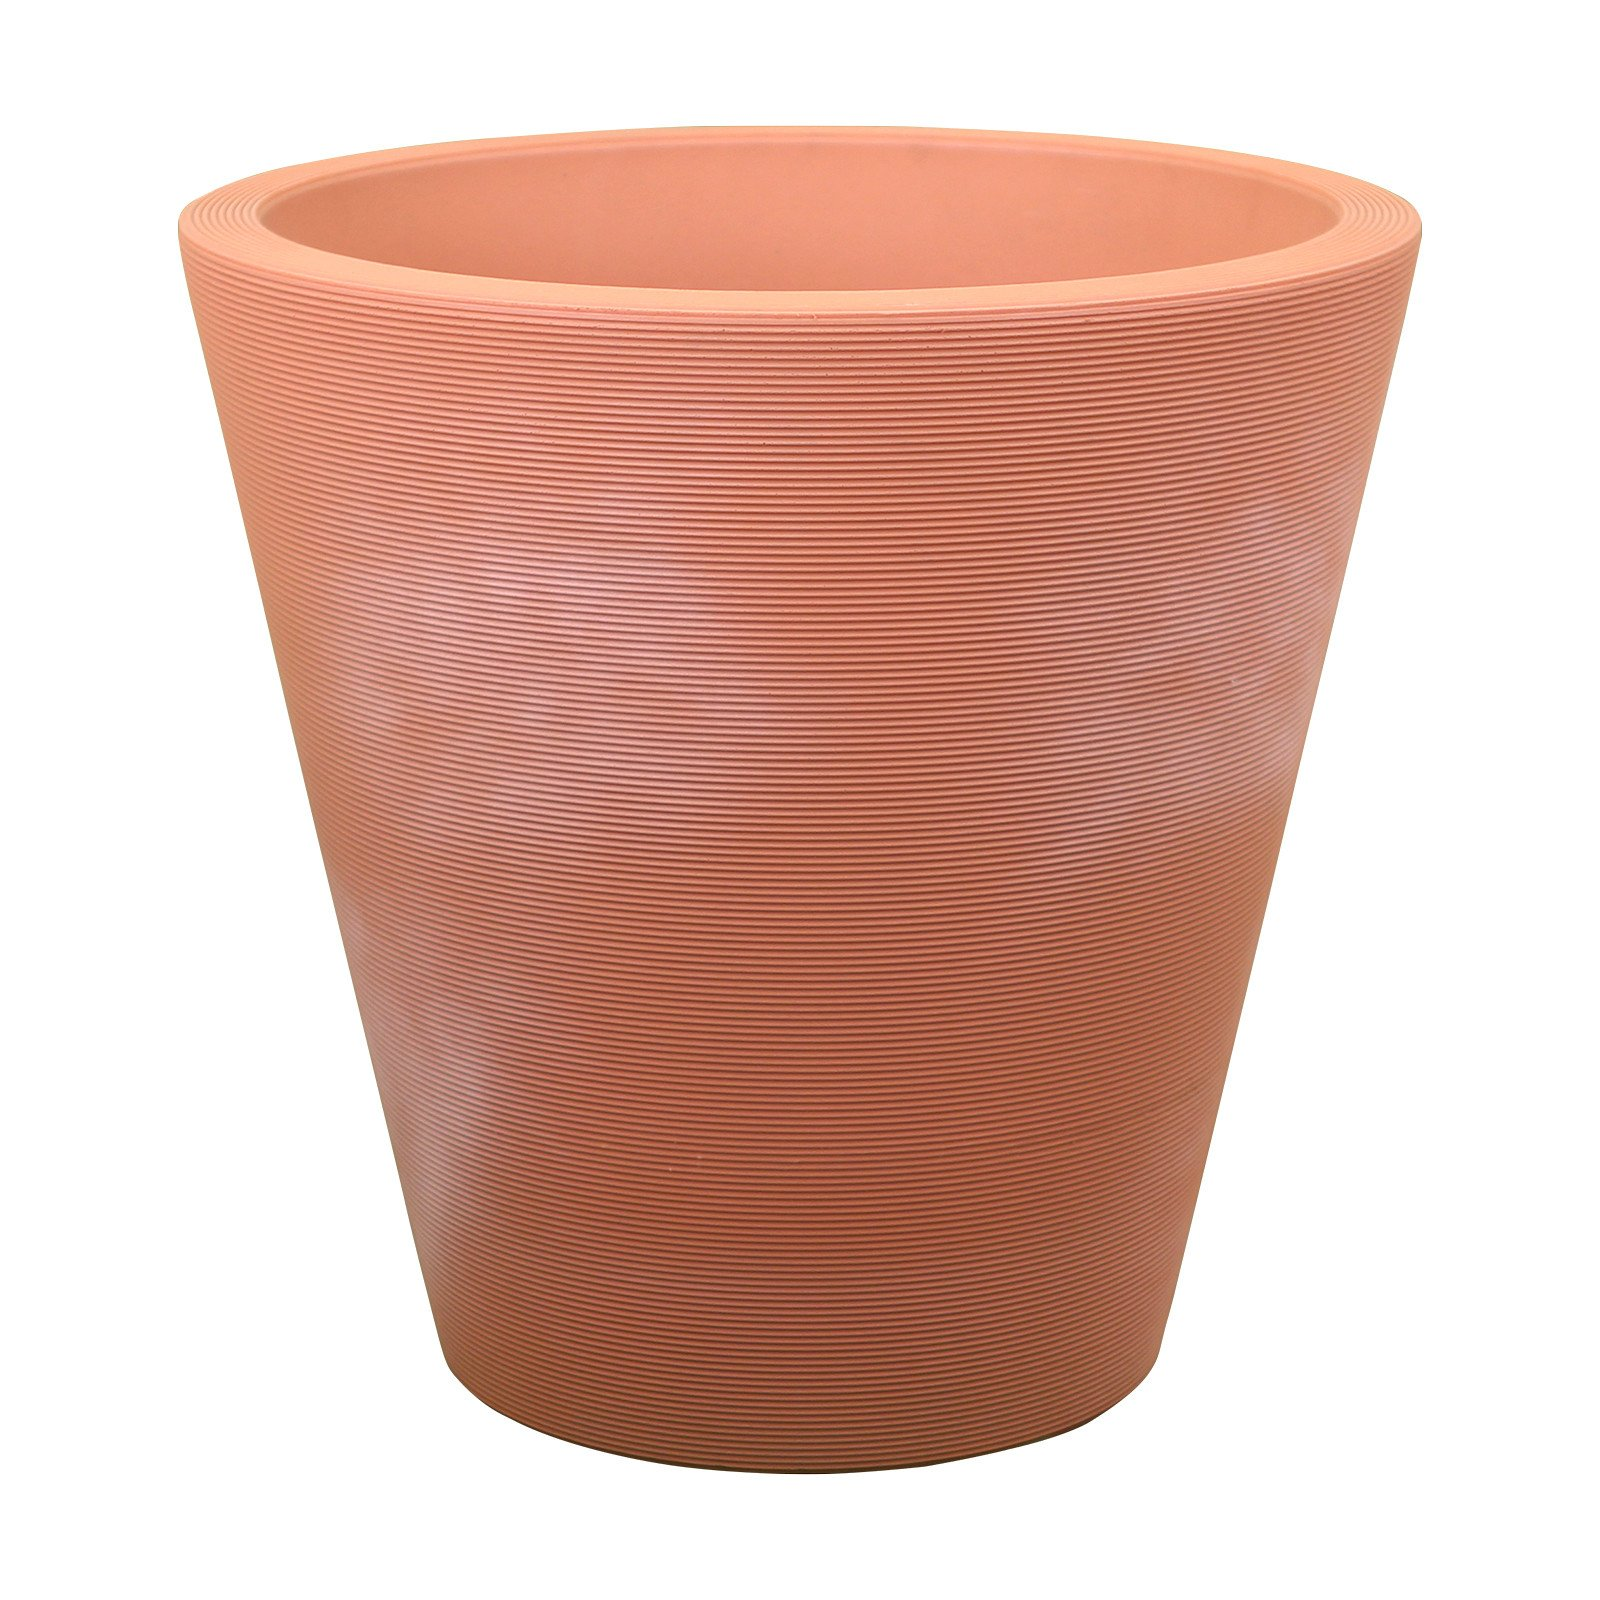 Large Outdoor Planters - Plastic - 14'/16'/20'/26'/34' Diameters